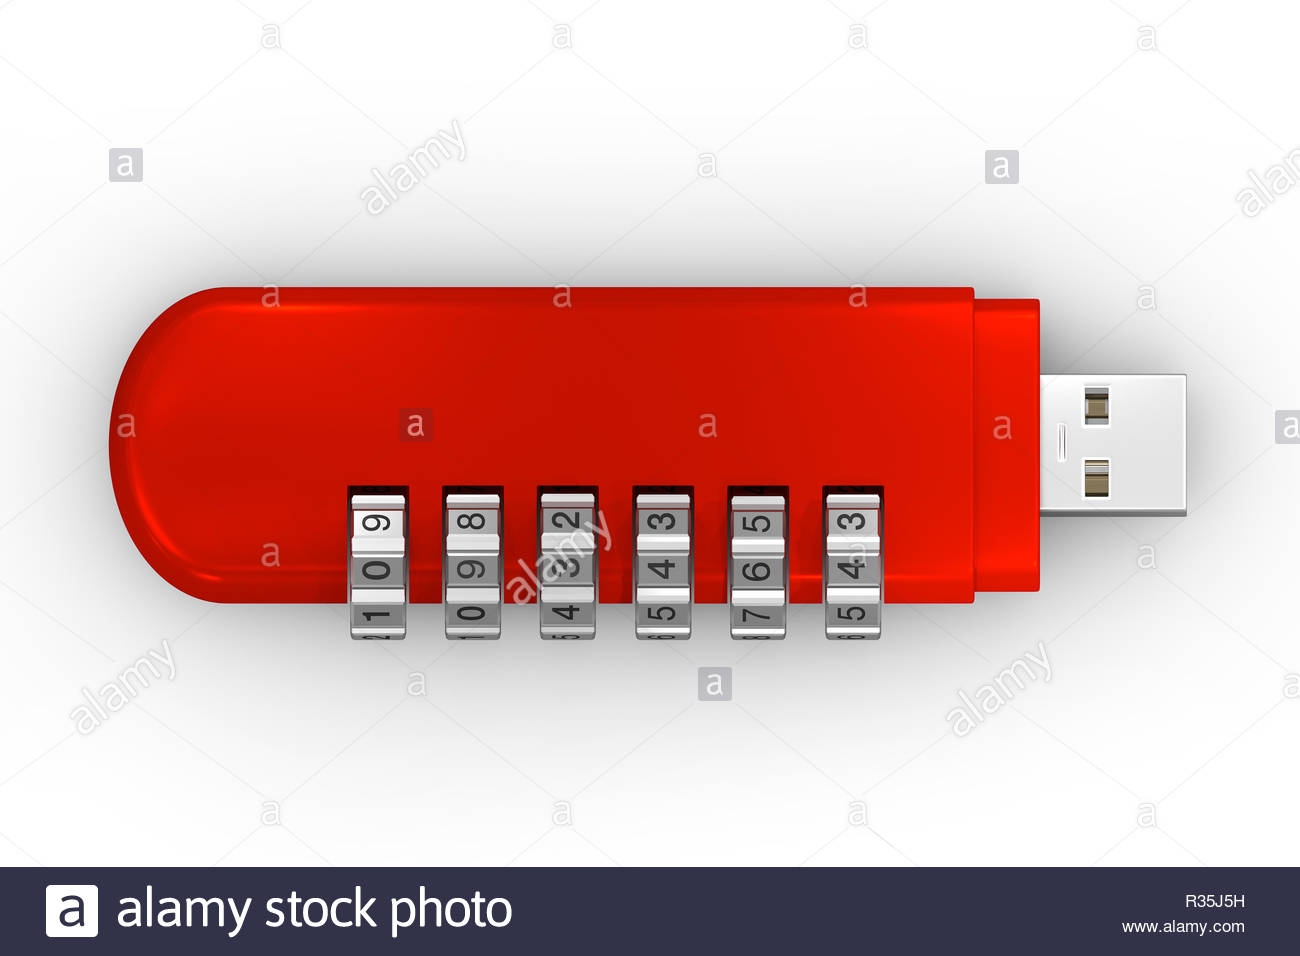 usb code red - Stock Image